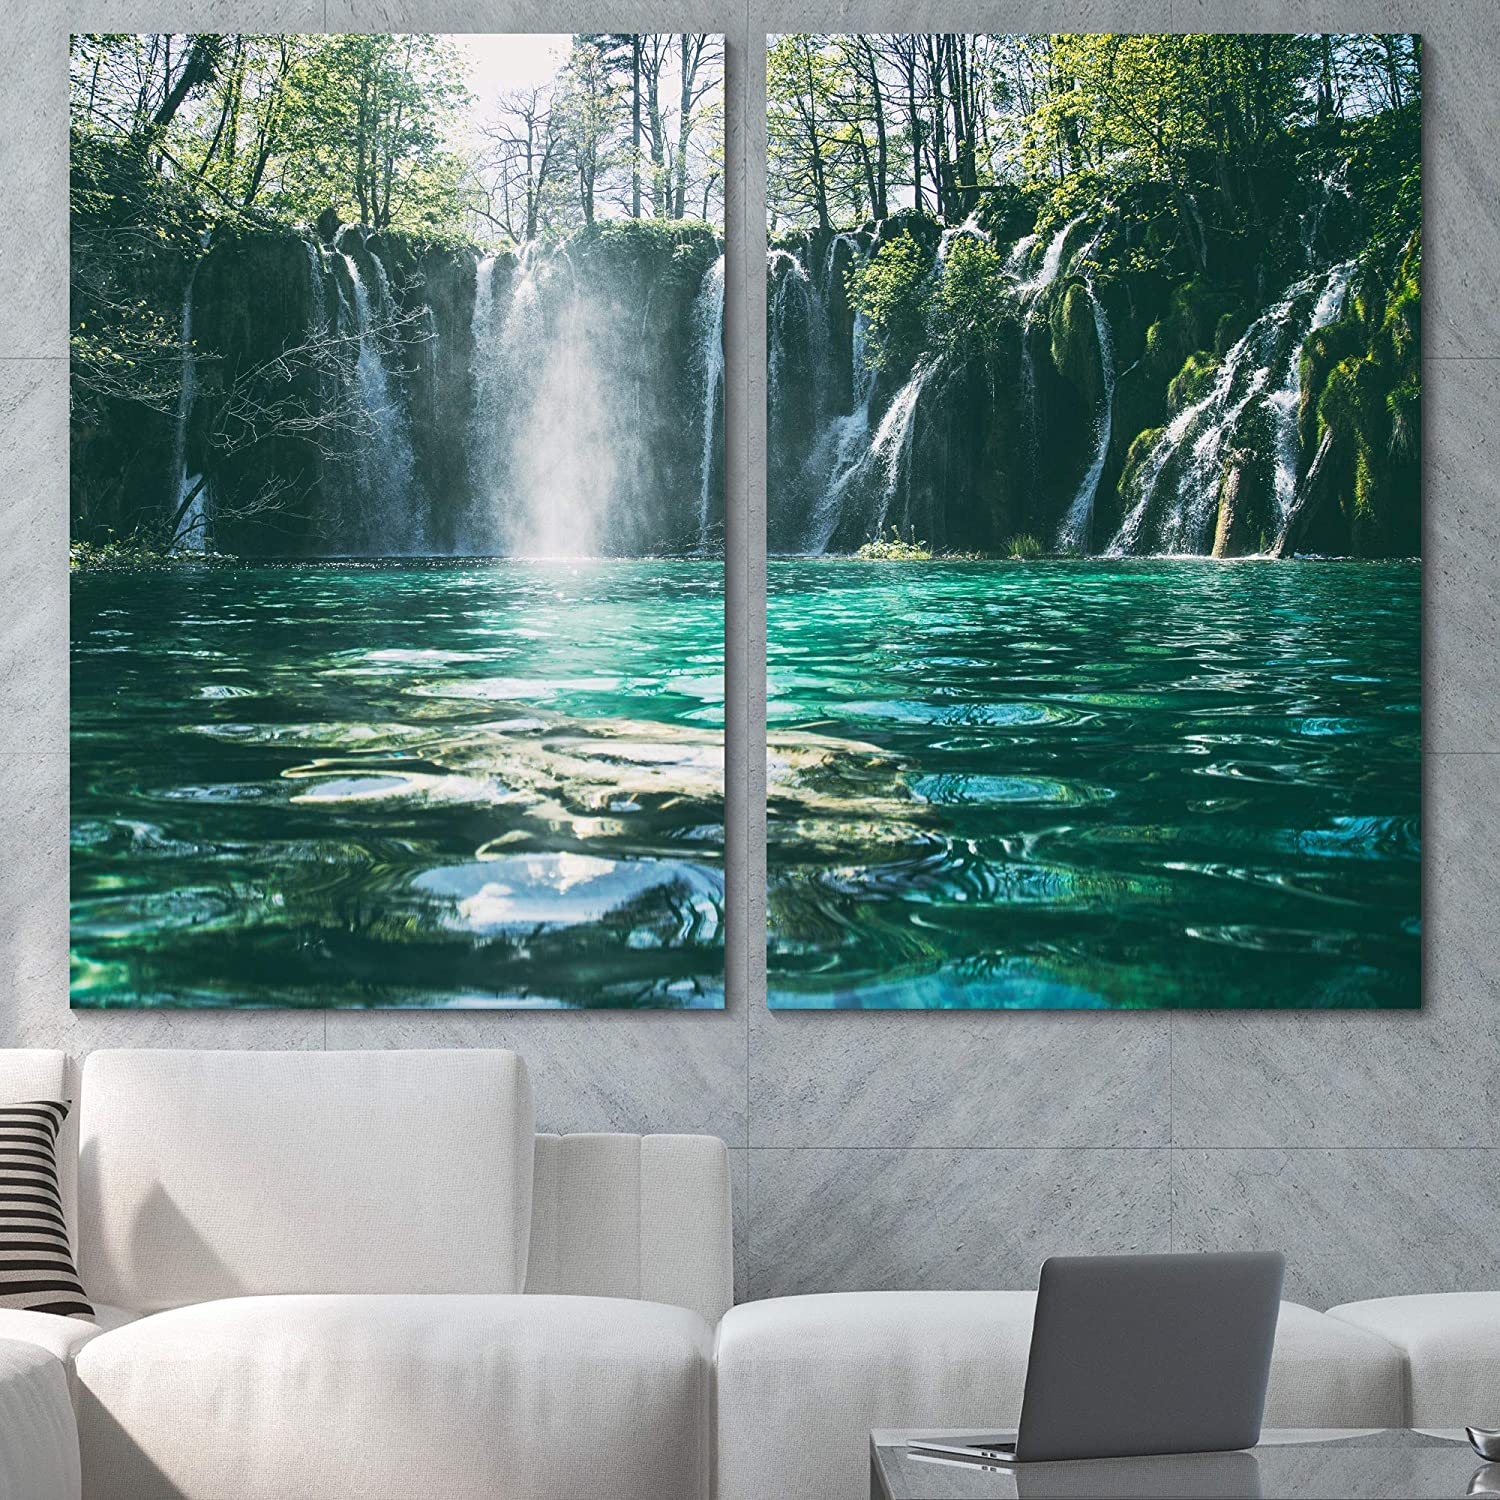 Sign Leader Forest Waterfalls Wall Art Multicolor Nature Photography Canvas Prints for Living Room Bedroom - 24